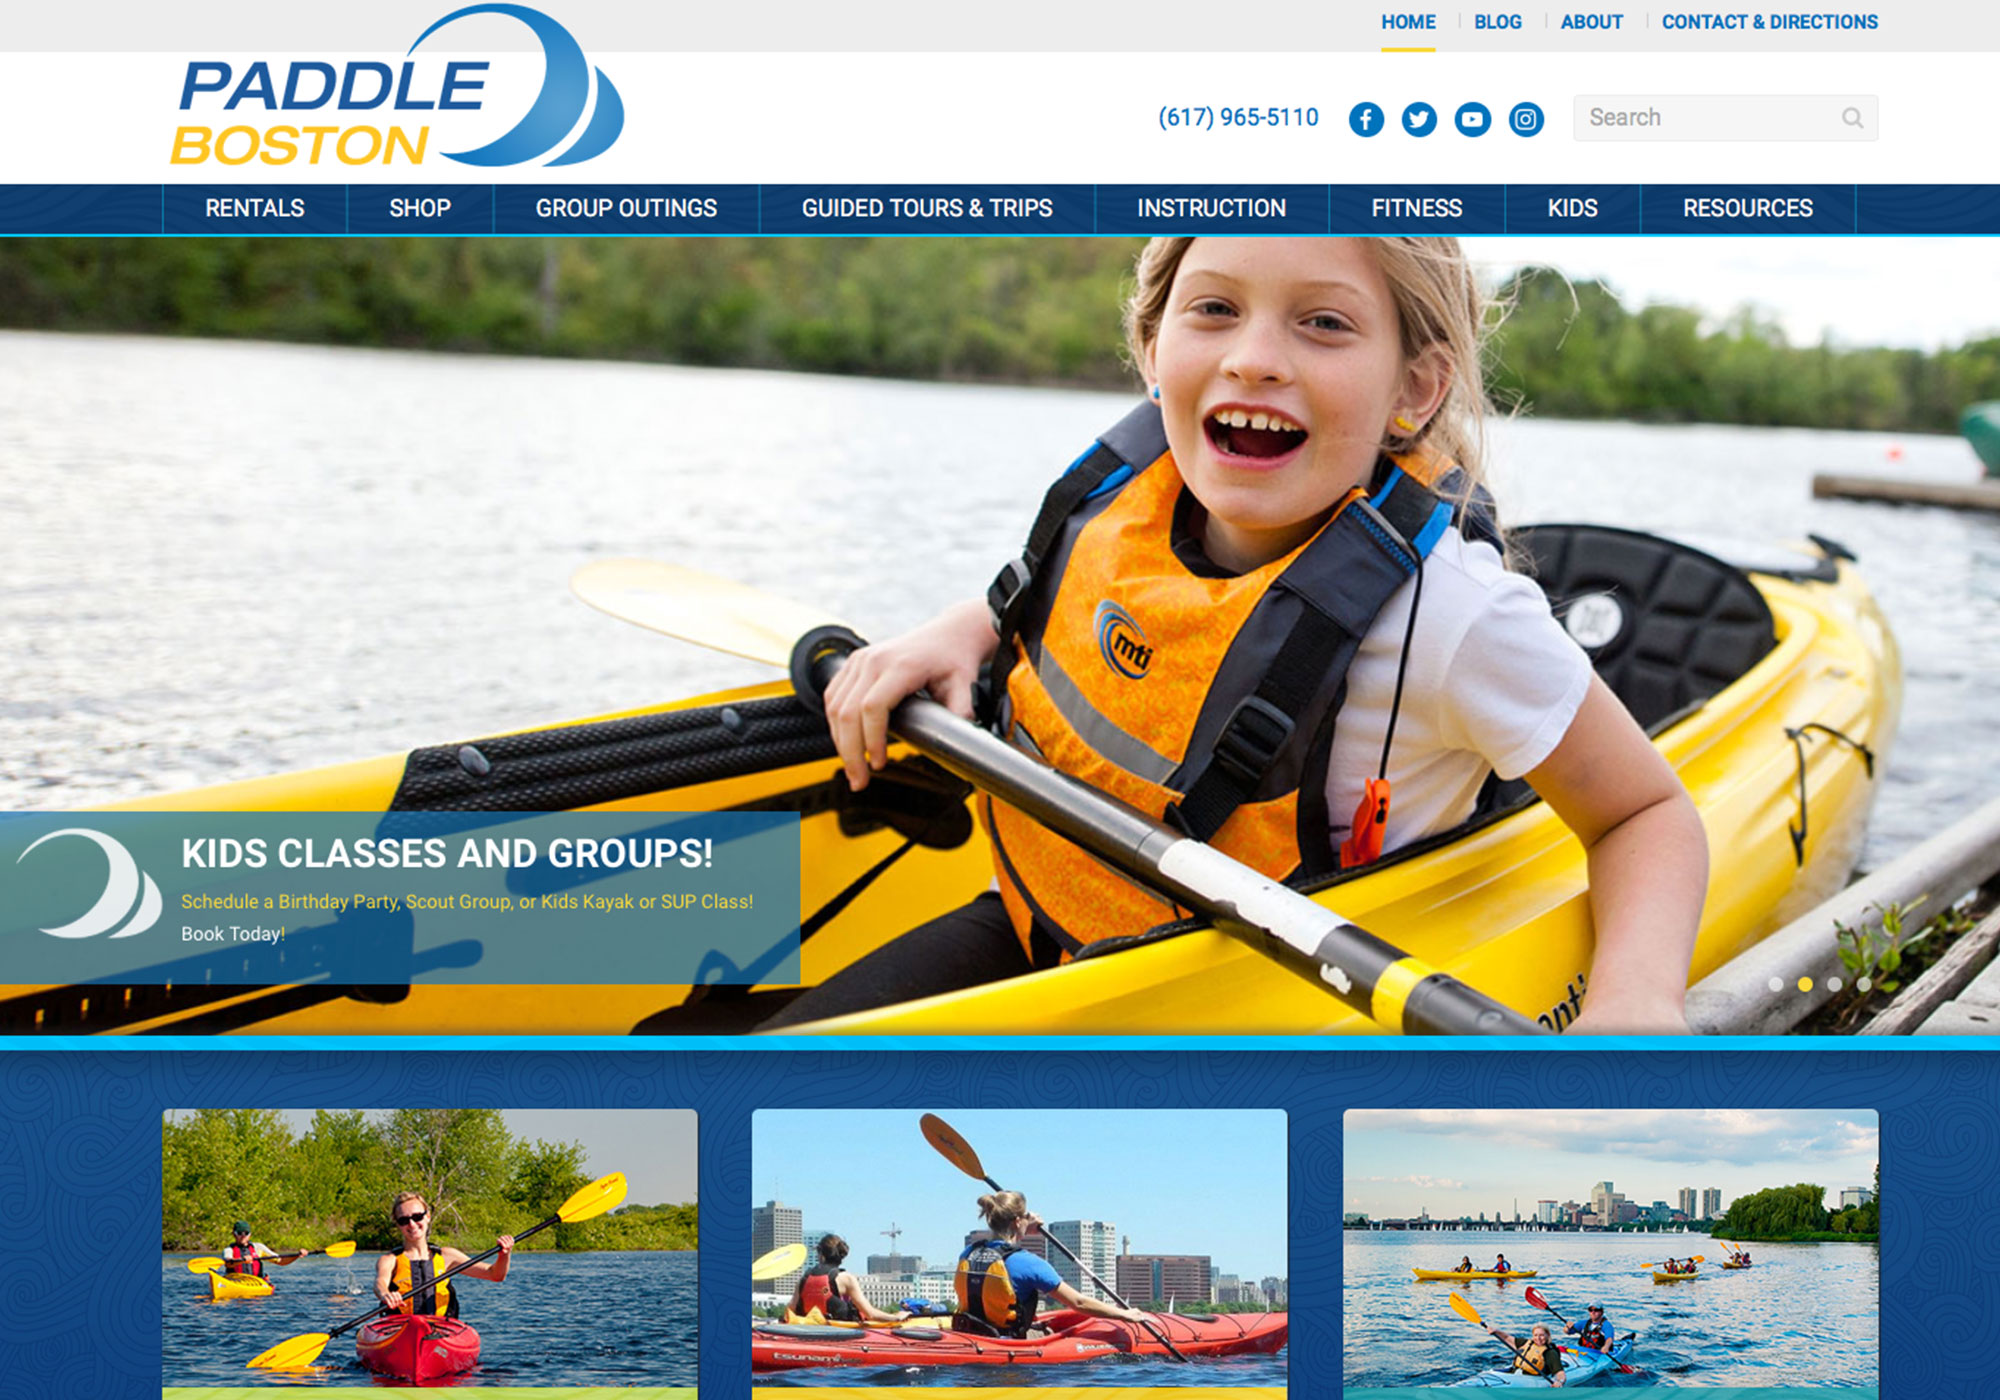 A screenshot of the SlickFish Studios designed and developed website for Paddle Boston, aka Charles River Canoe & Kayak.